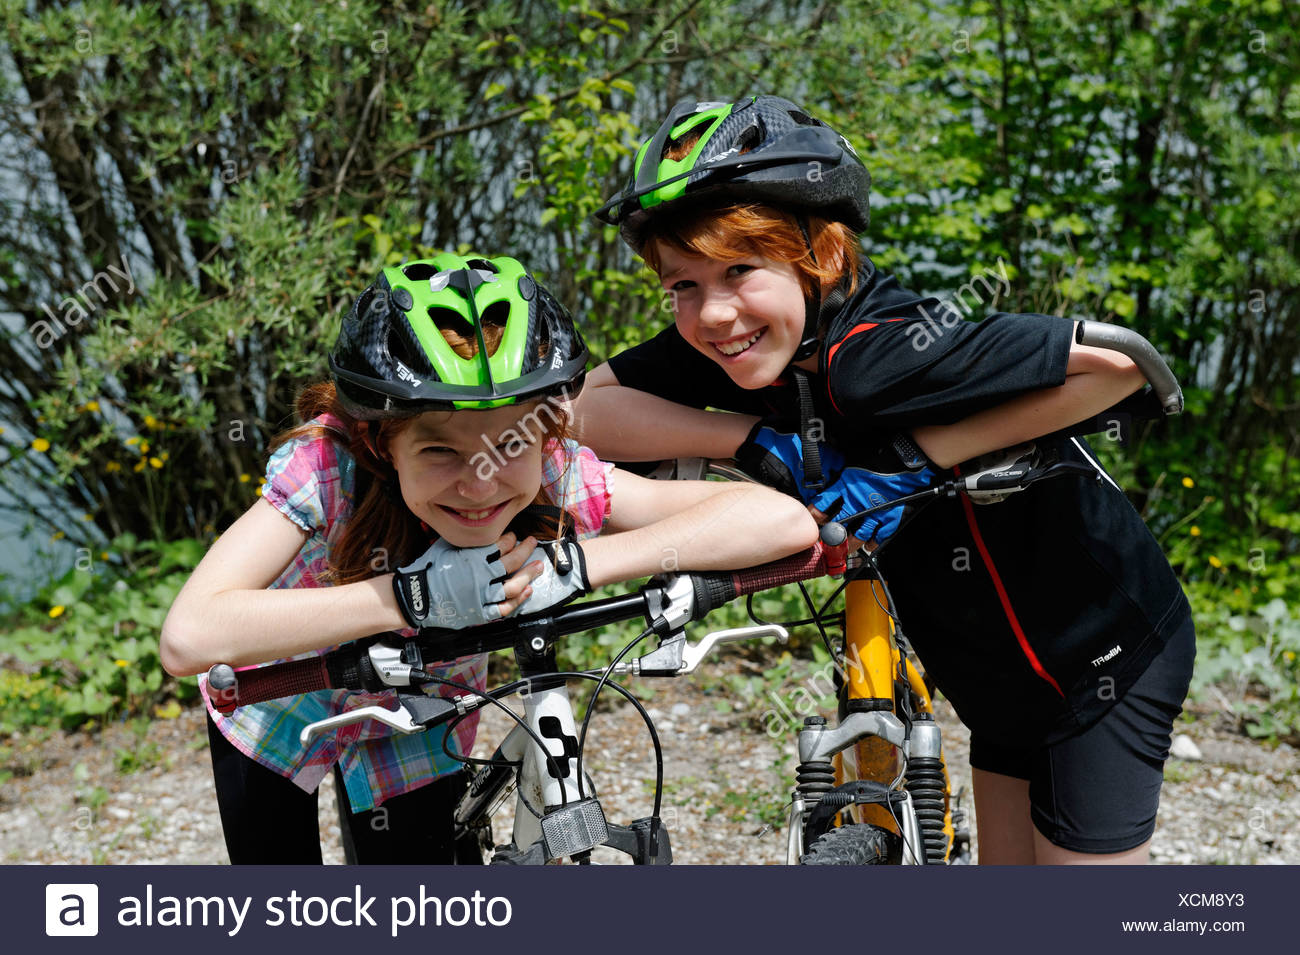 Two children, boy and girl with mountain bikes and helmets - Stock Image